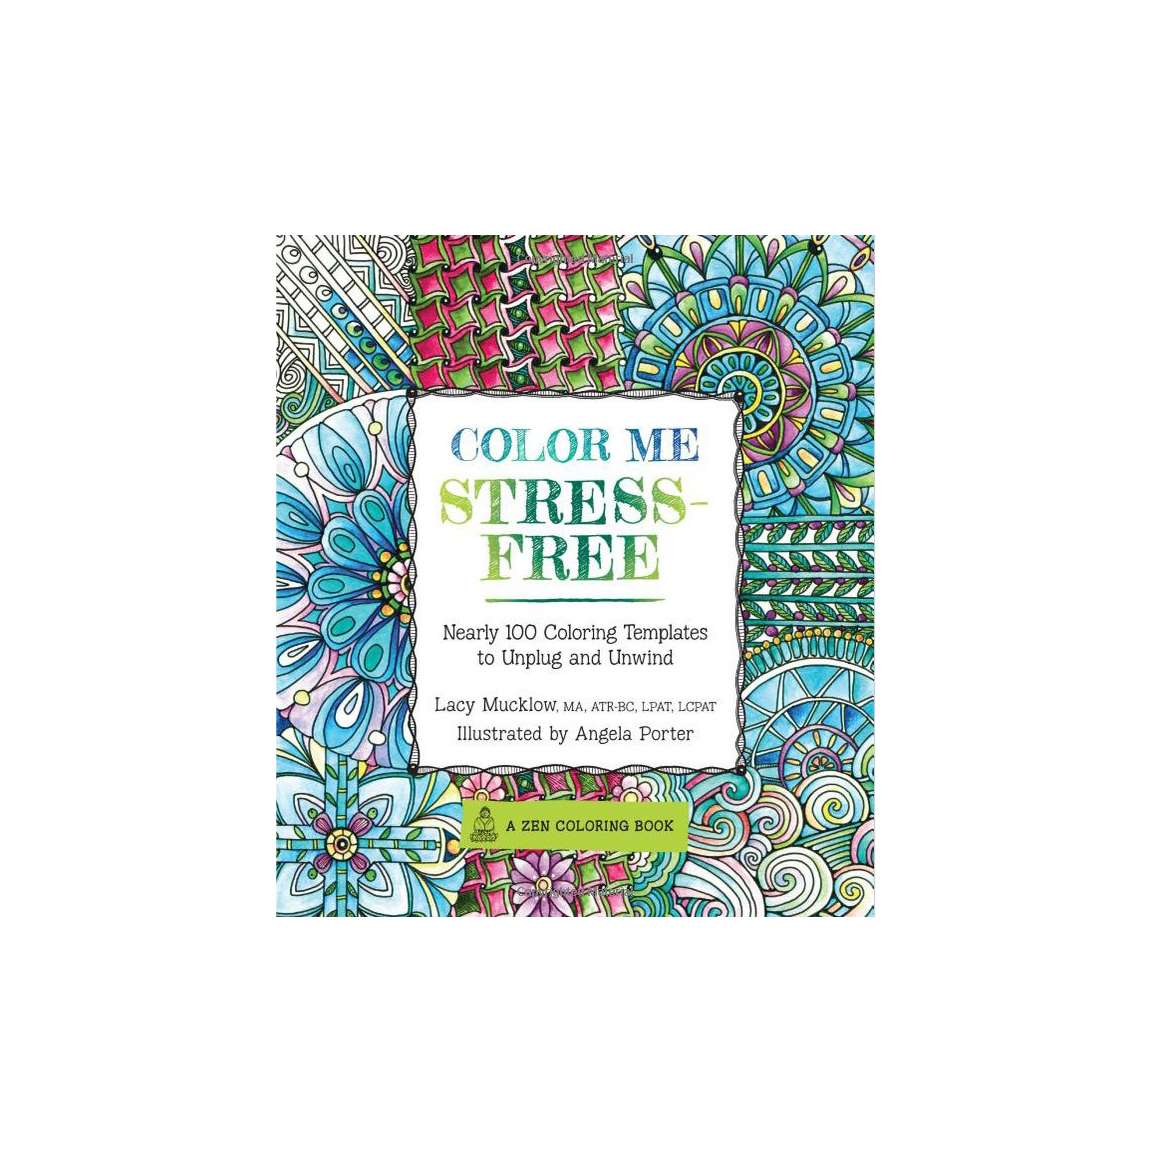 Color Me Stress-Free: 100 Coloring Templates to Unplug and Unwind, by Lacy Mucklow